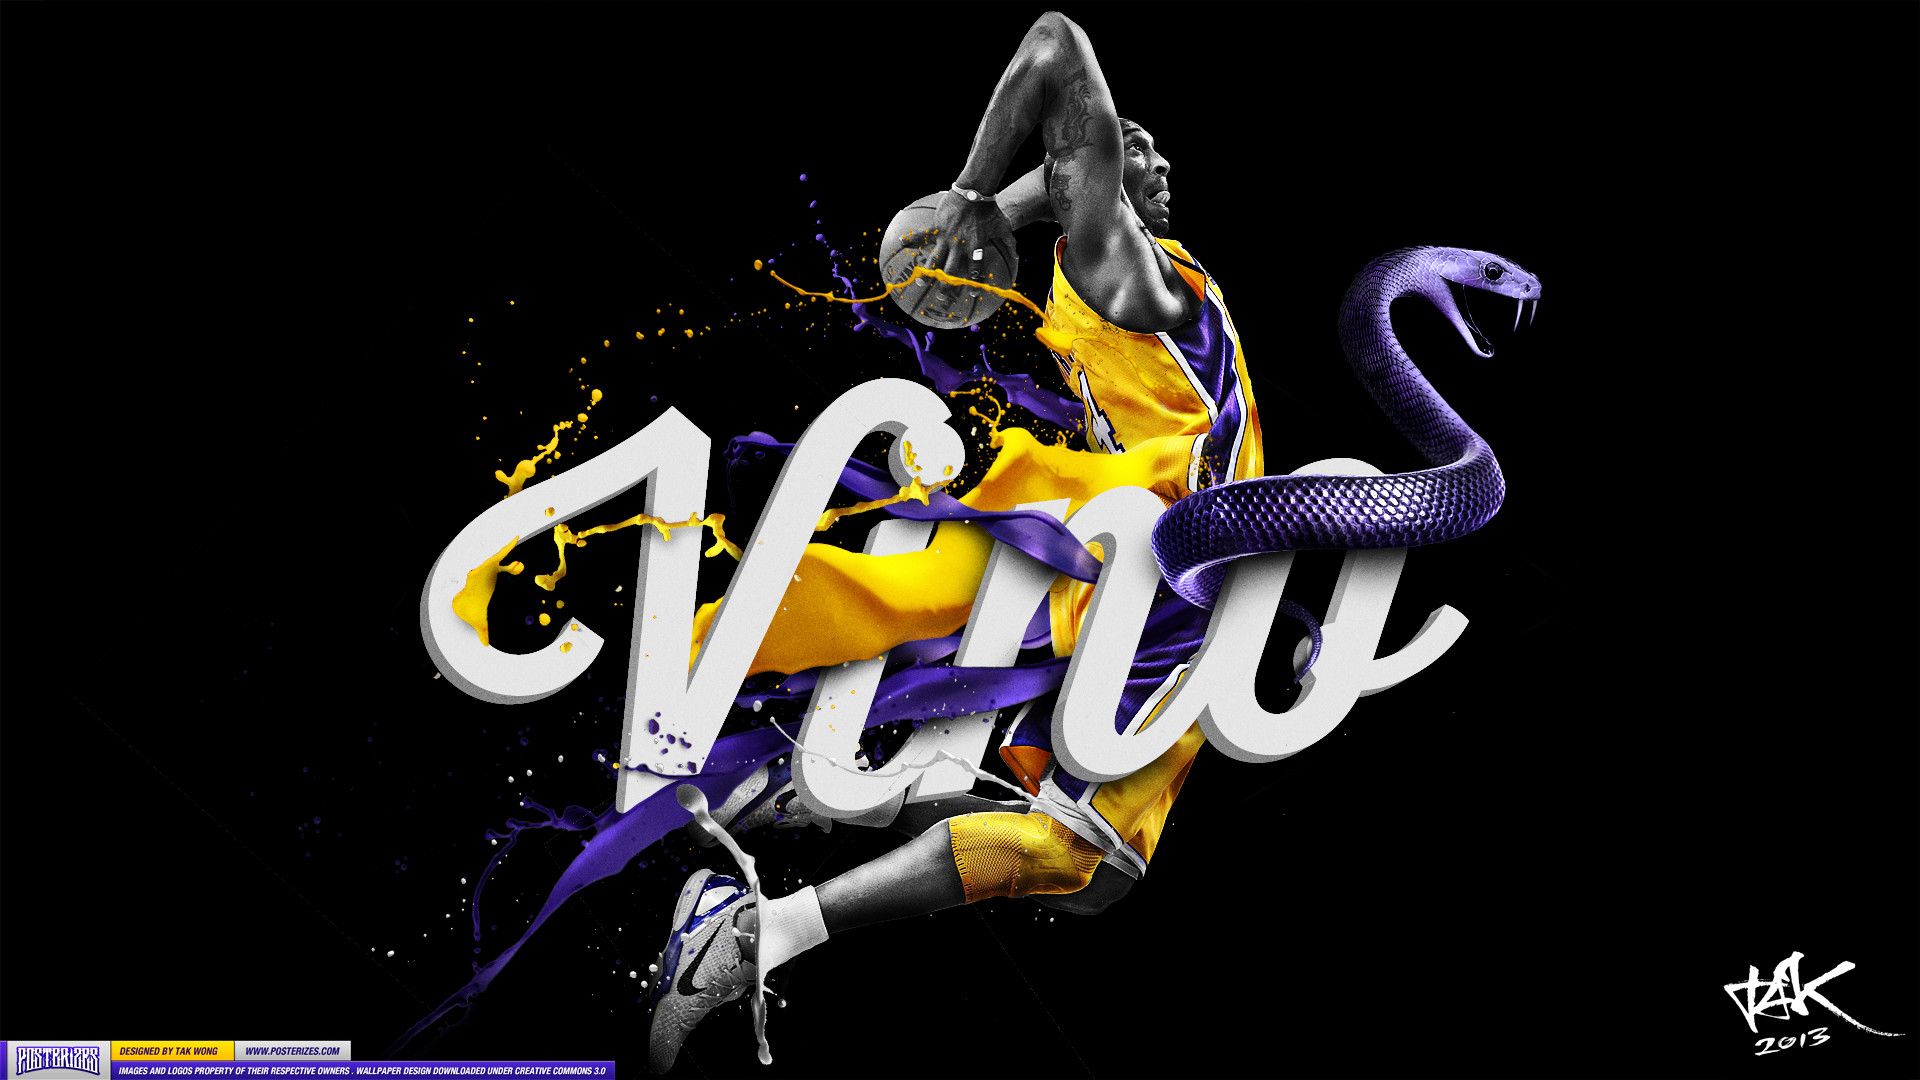 Kobe Bryant Dunk Wallpaper 1080p Is Cool Wallpapers